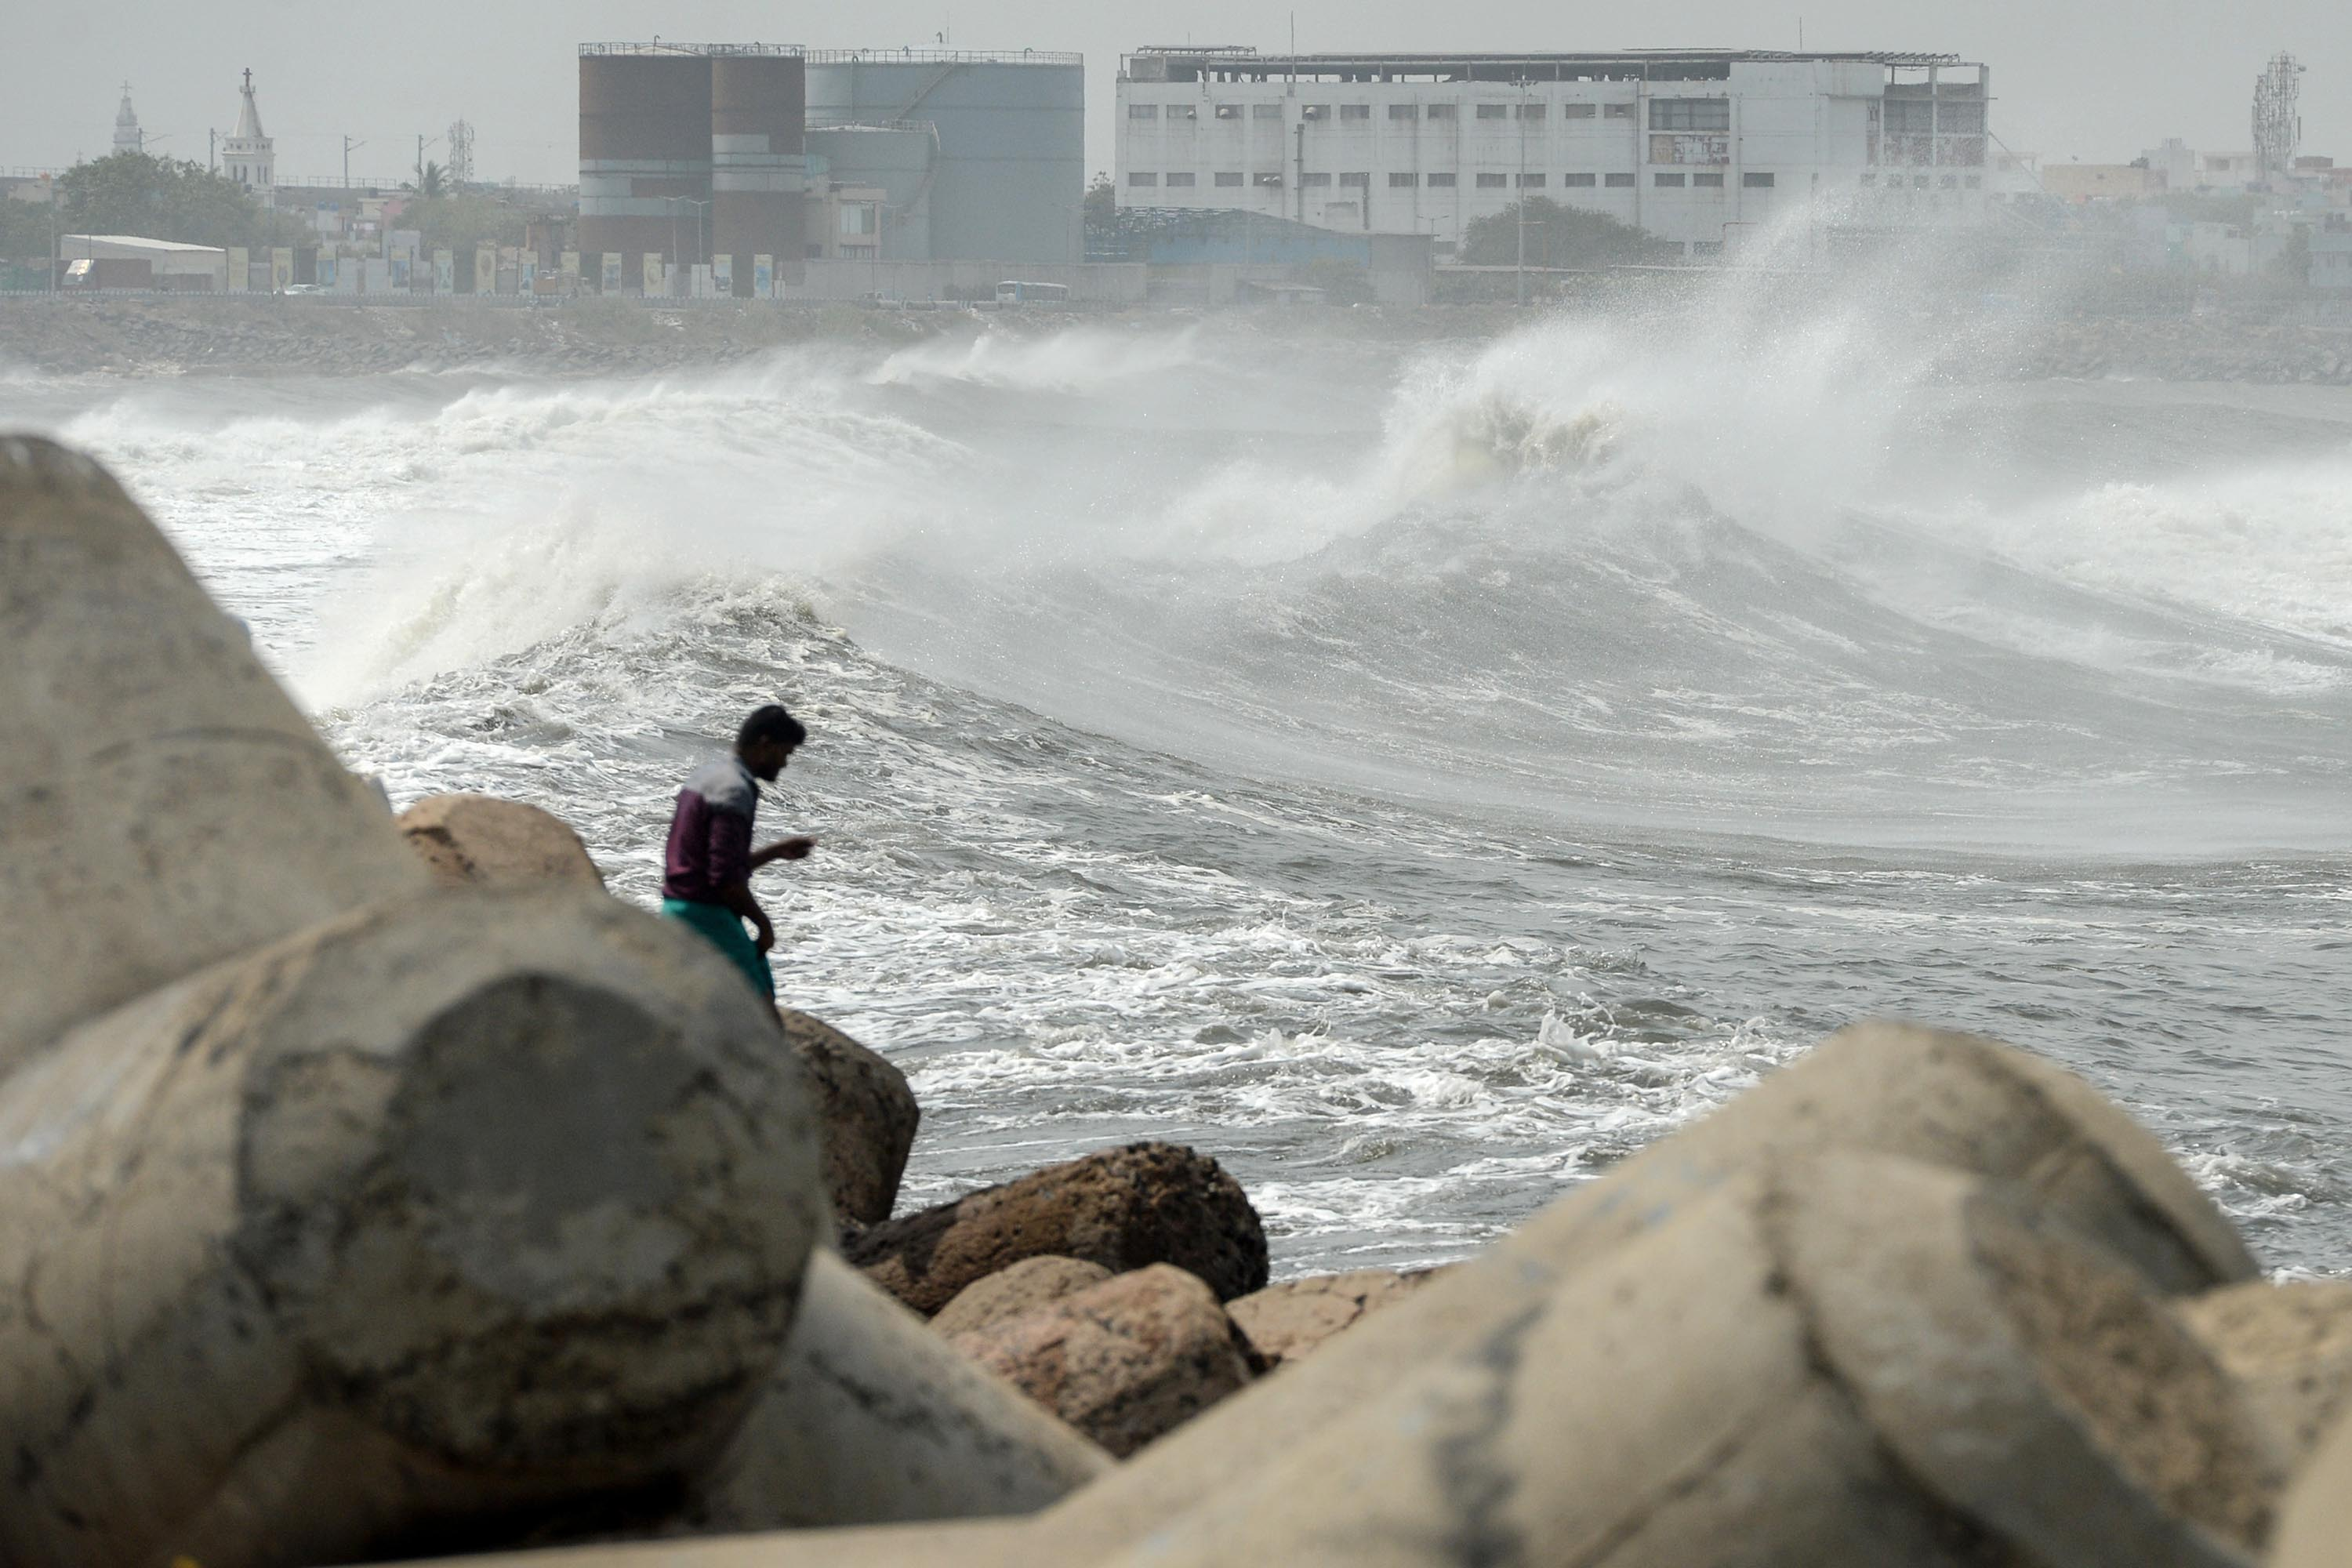 Cyclone Amphan Update India And Bangladesh Brace For Record Storm Cnn